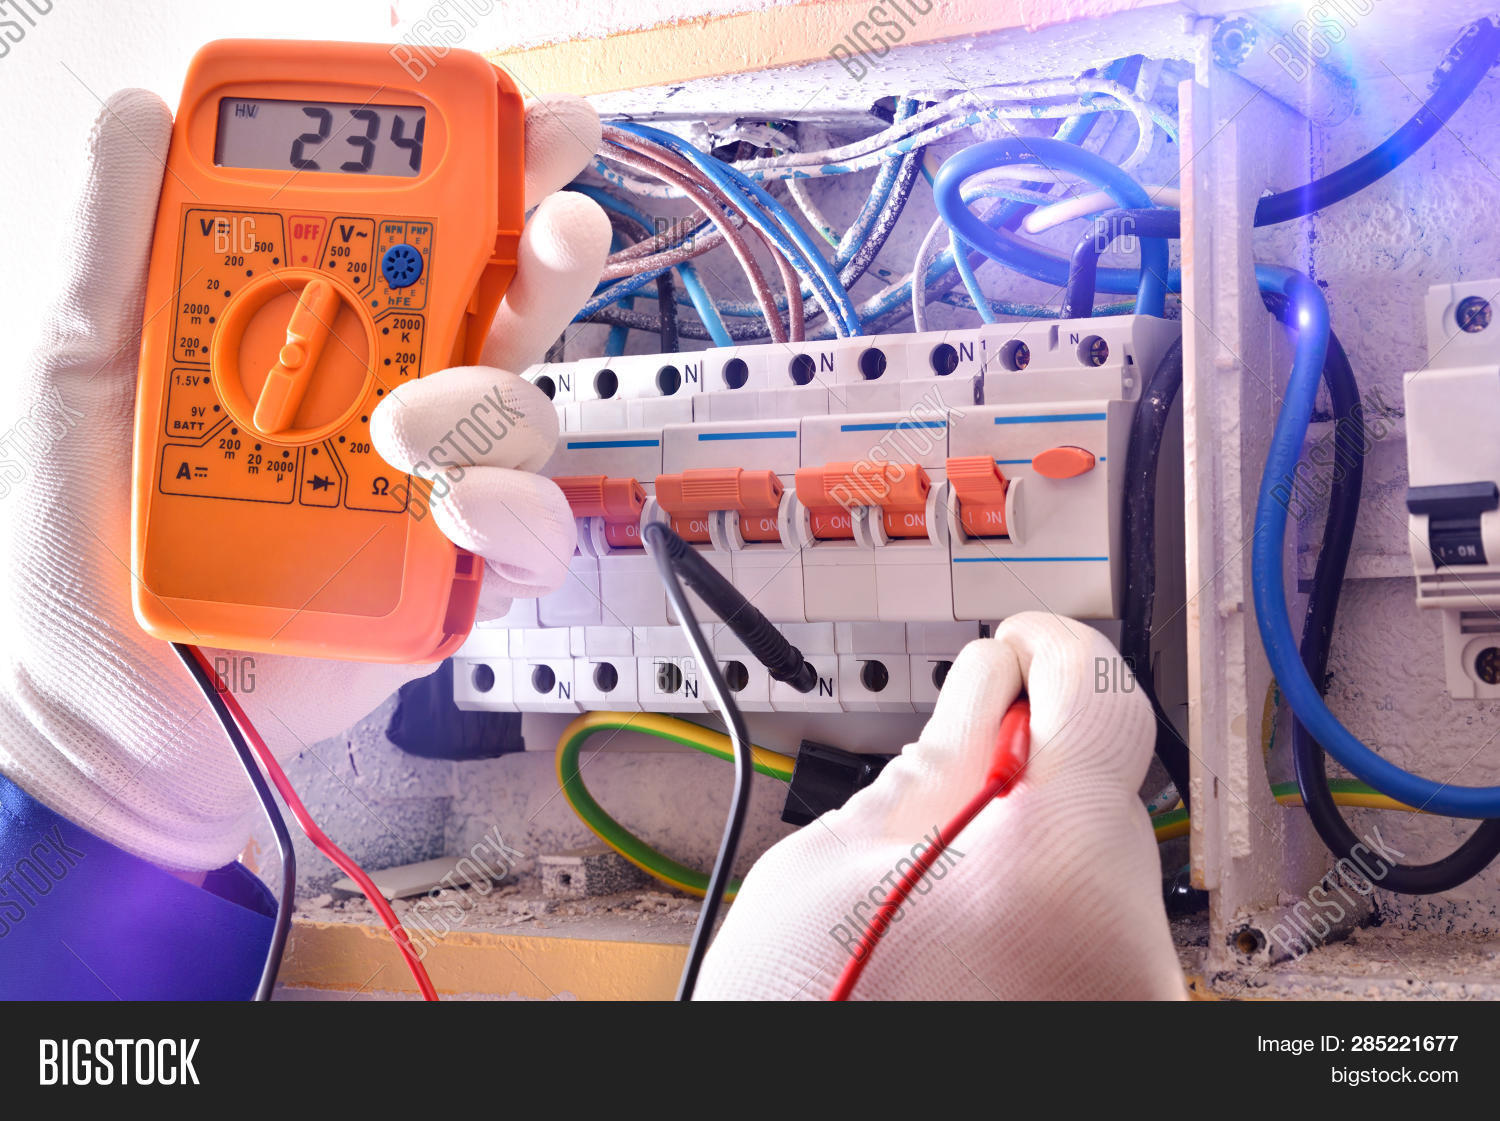 analyzing,box,cable,check,checking,distributor,electric,electrical,electrician,electricity,employee,energy,equipment,glove,hands,house,inspecting,installation,installer,job,maintenance,man,measure,measuring,multimeter,occupation,panel,people,person,power,profession,professional,protection,repair,repairing,repairman,safety,service,specialist,technical,technician,test,tester,testing,voltage,wire,work,worker,working